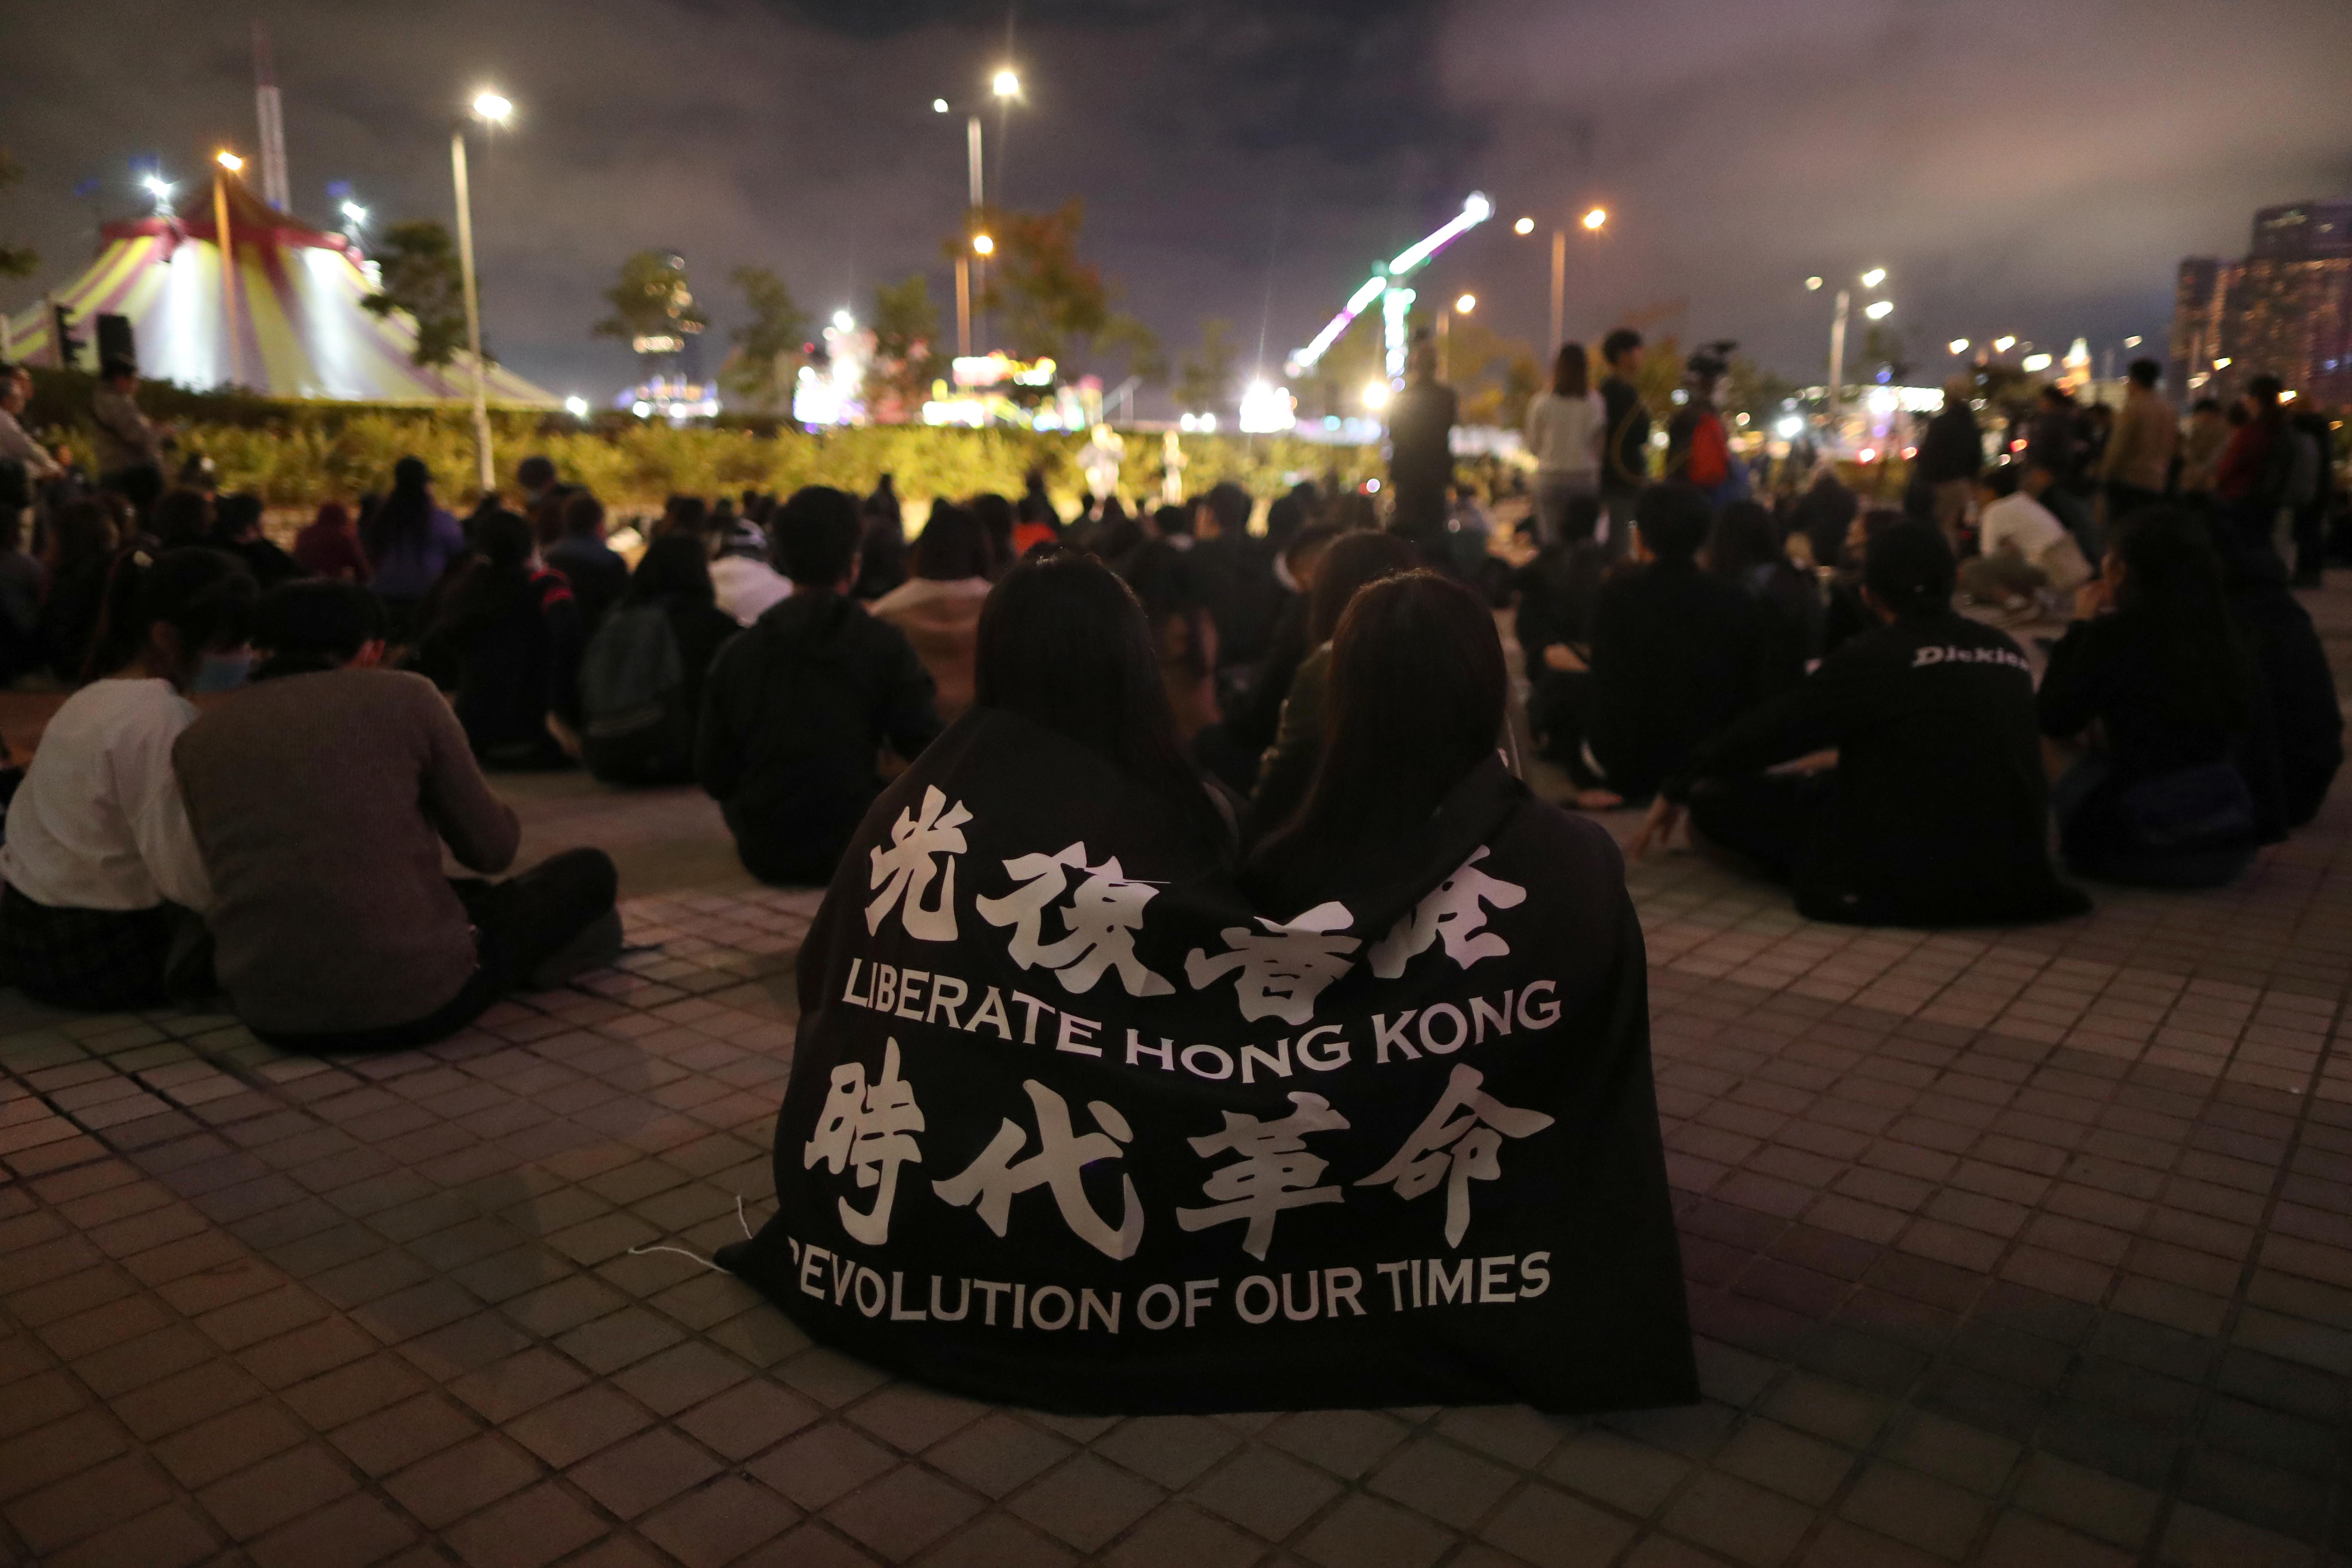 Protesters rally to remember the deaths and injuries during the months of protests, in Edinburgh Place in Hong Kong, China, December 30, 2019. Photo: Reuters